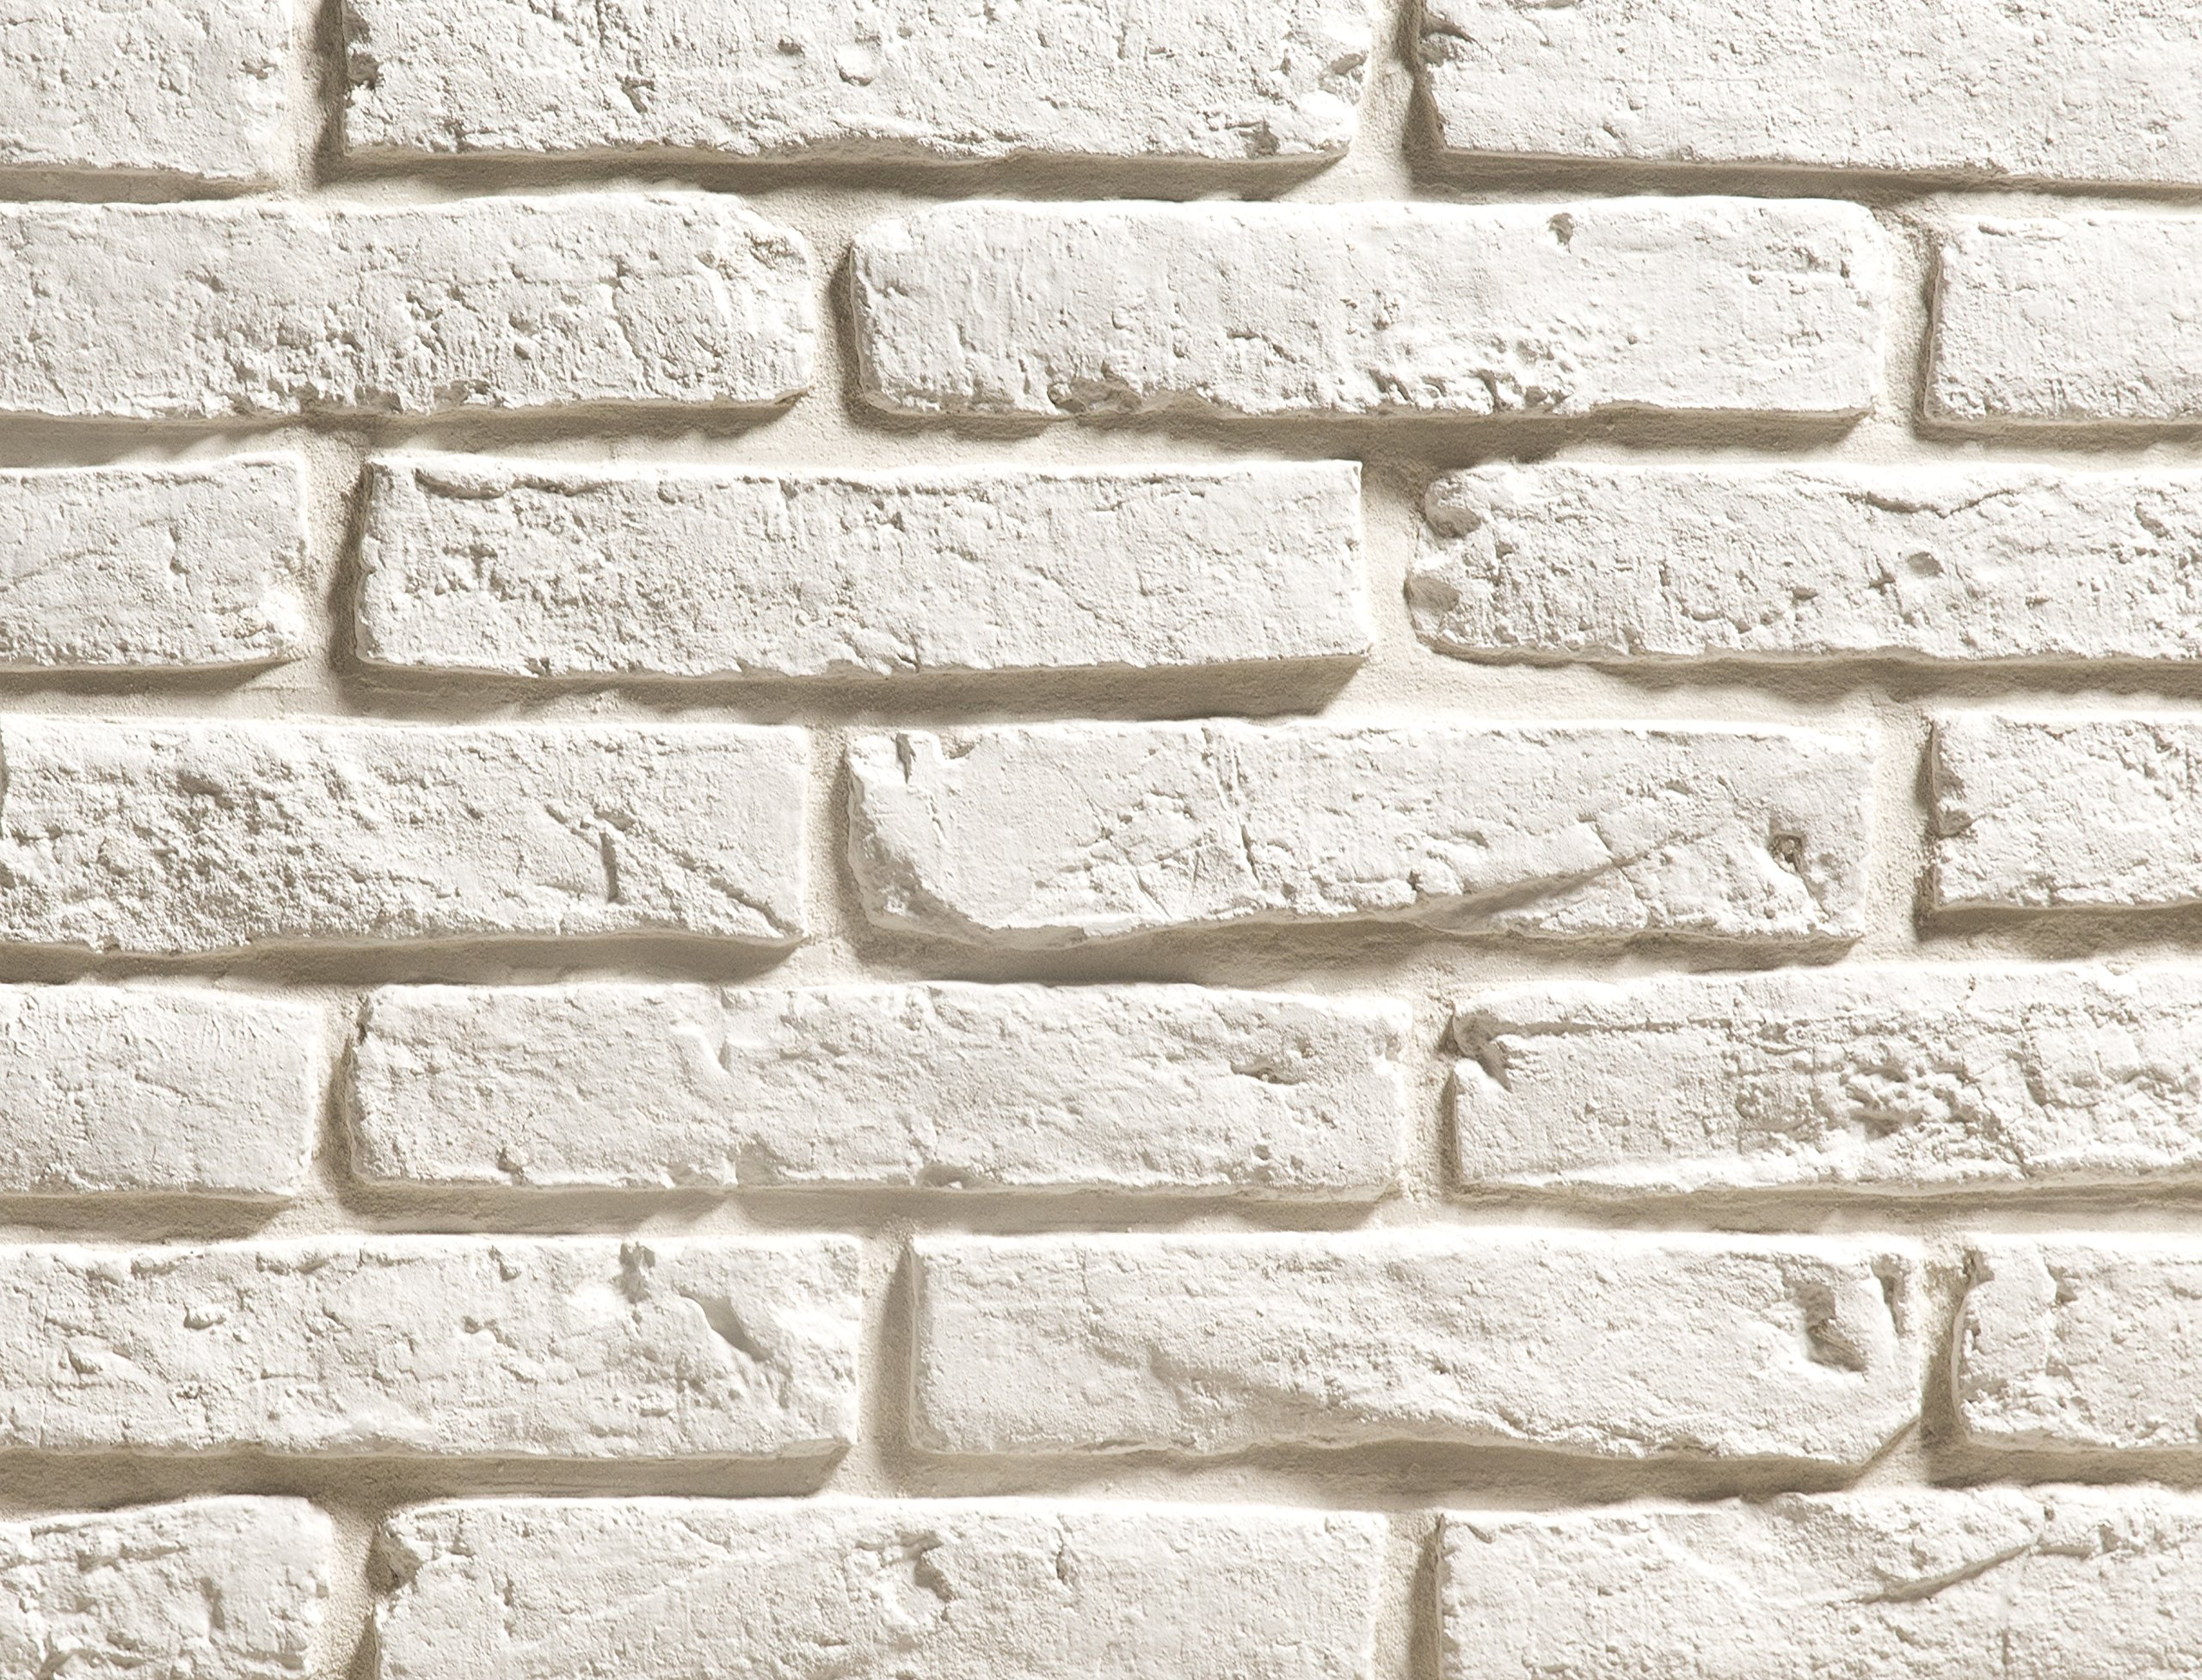 Old Brick White Decorative Stone Effect Cladding Wall Tiles Indoor Outdoor Buy Online In Austria At Desertcart At Productid 58760751